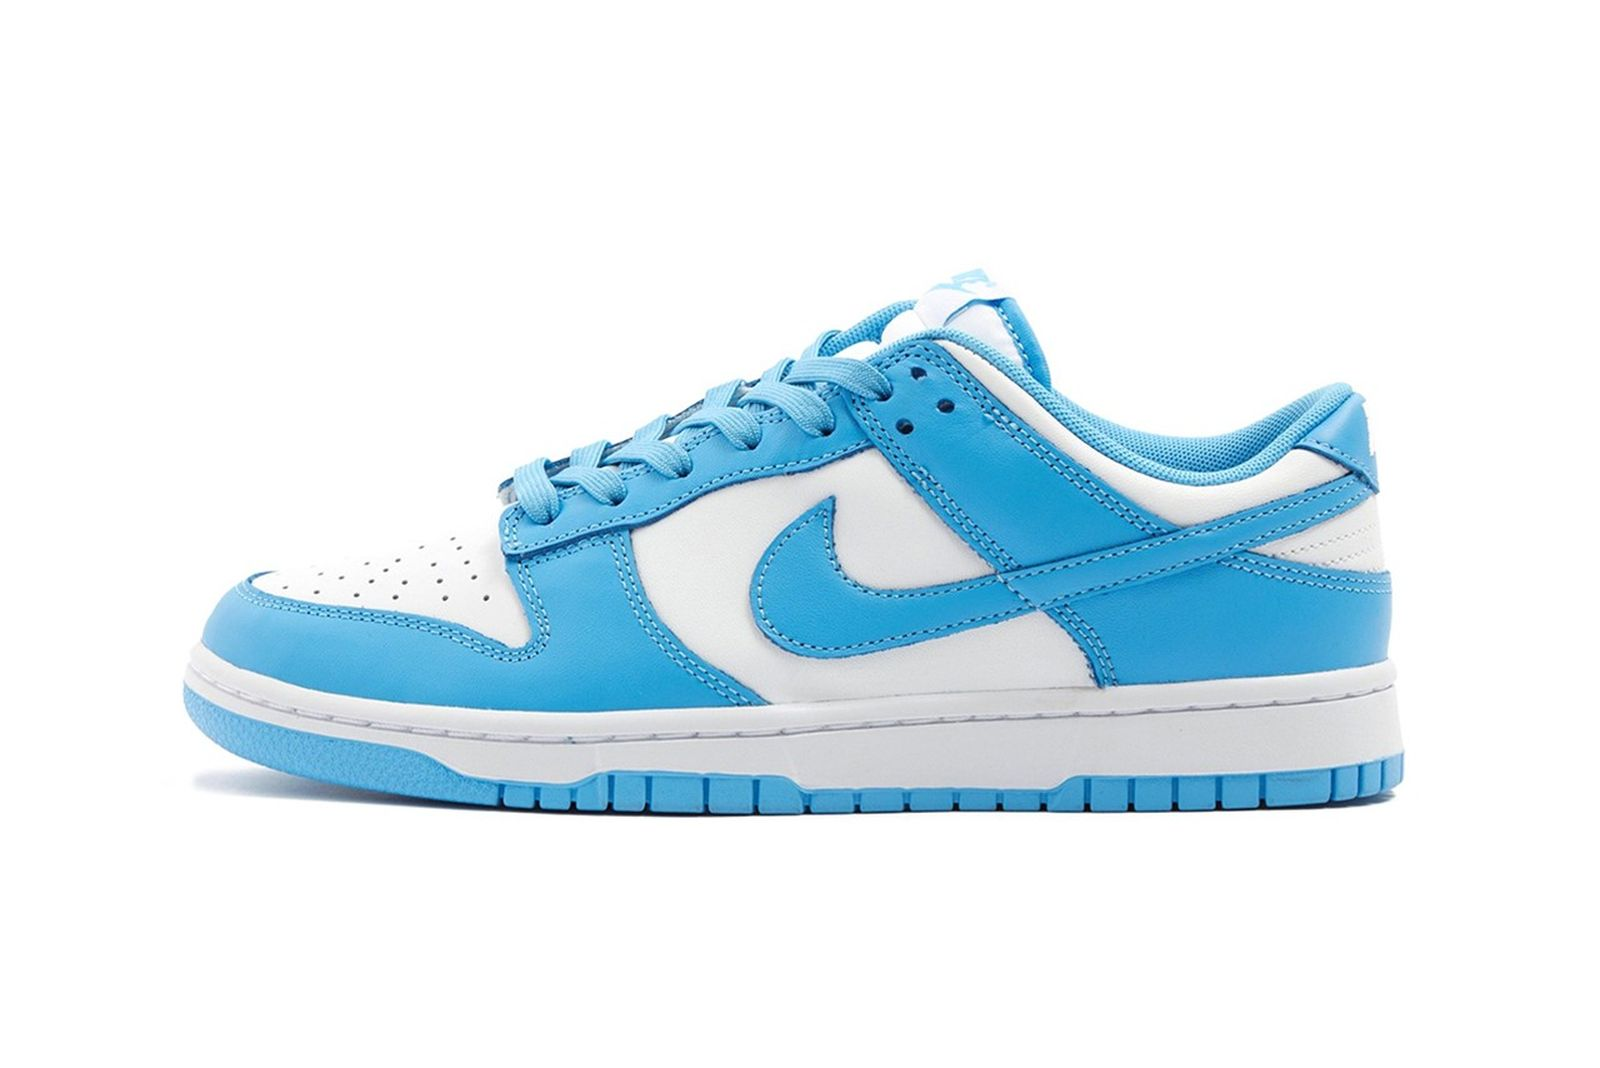 nike-dunk-low-university-blue-release-date-price-3